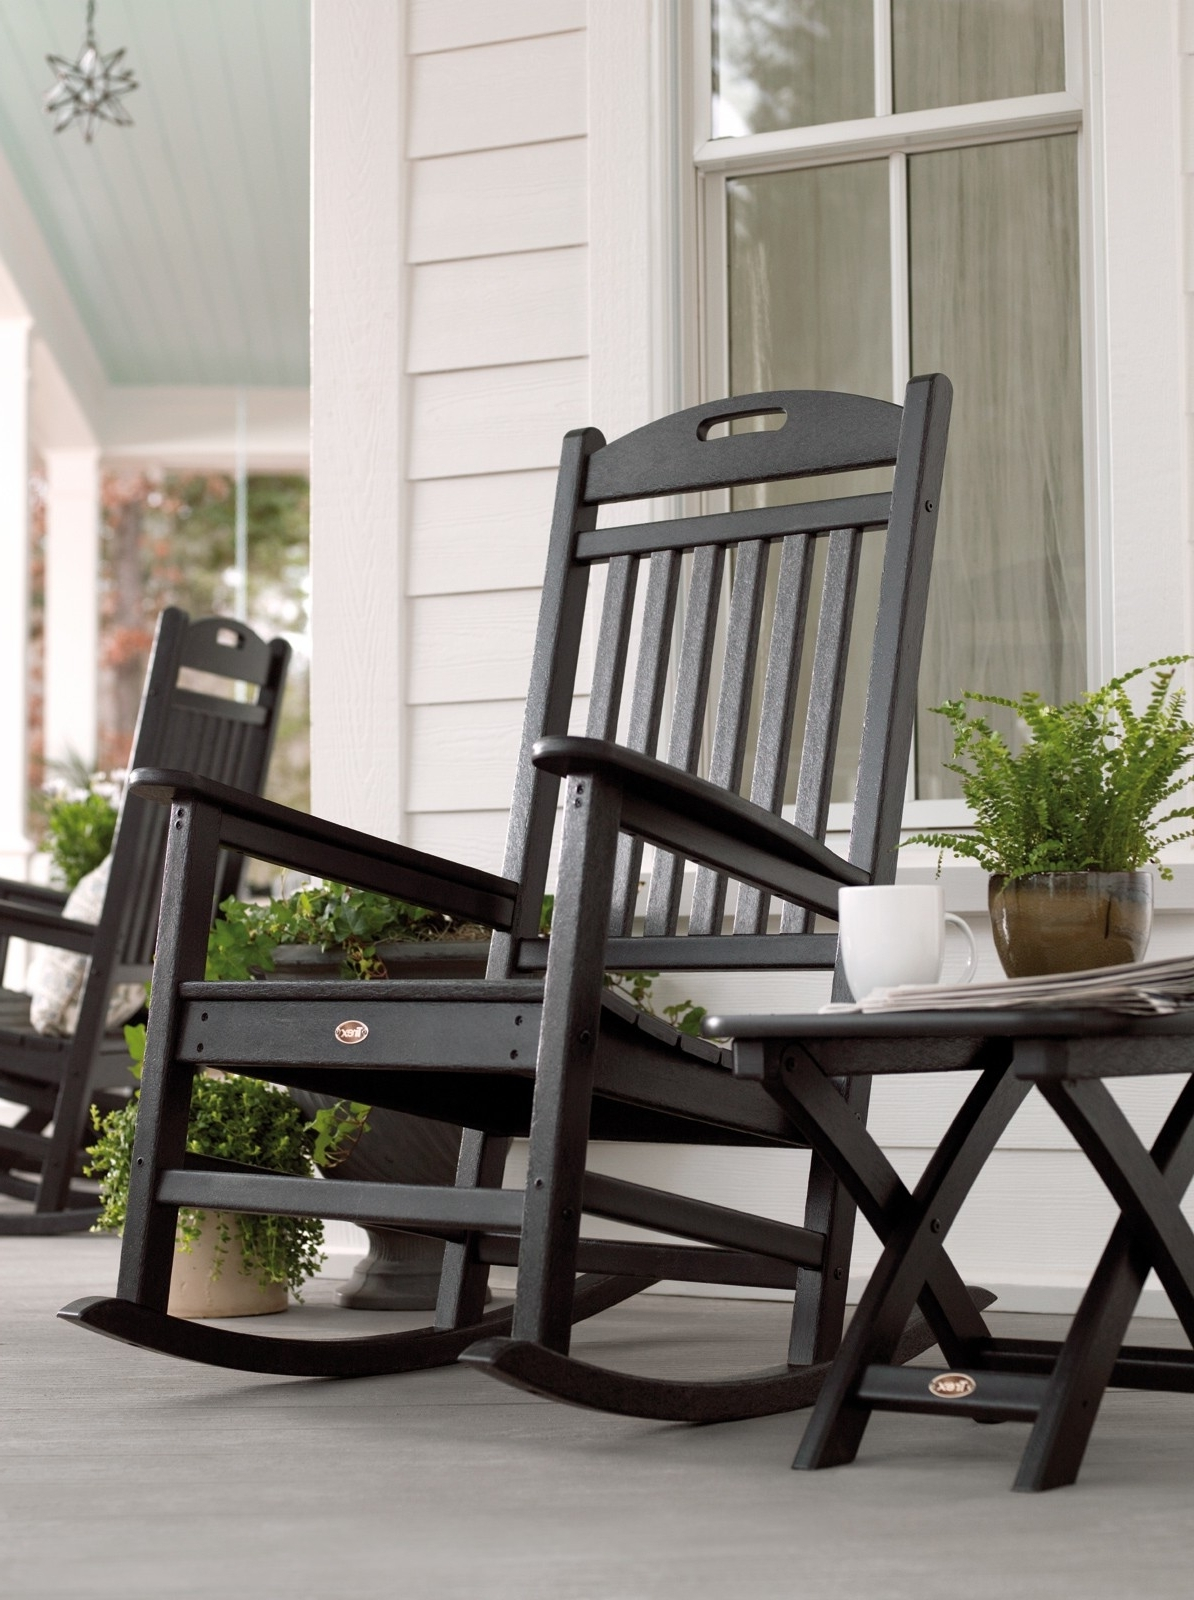 Vintage Outdoor Rocking Chairs For Famous Patio & Garden : Rocking Chairs For Outdoors Amazing Amazon Merry (View 13 of 20)